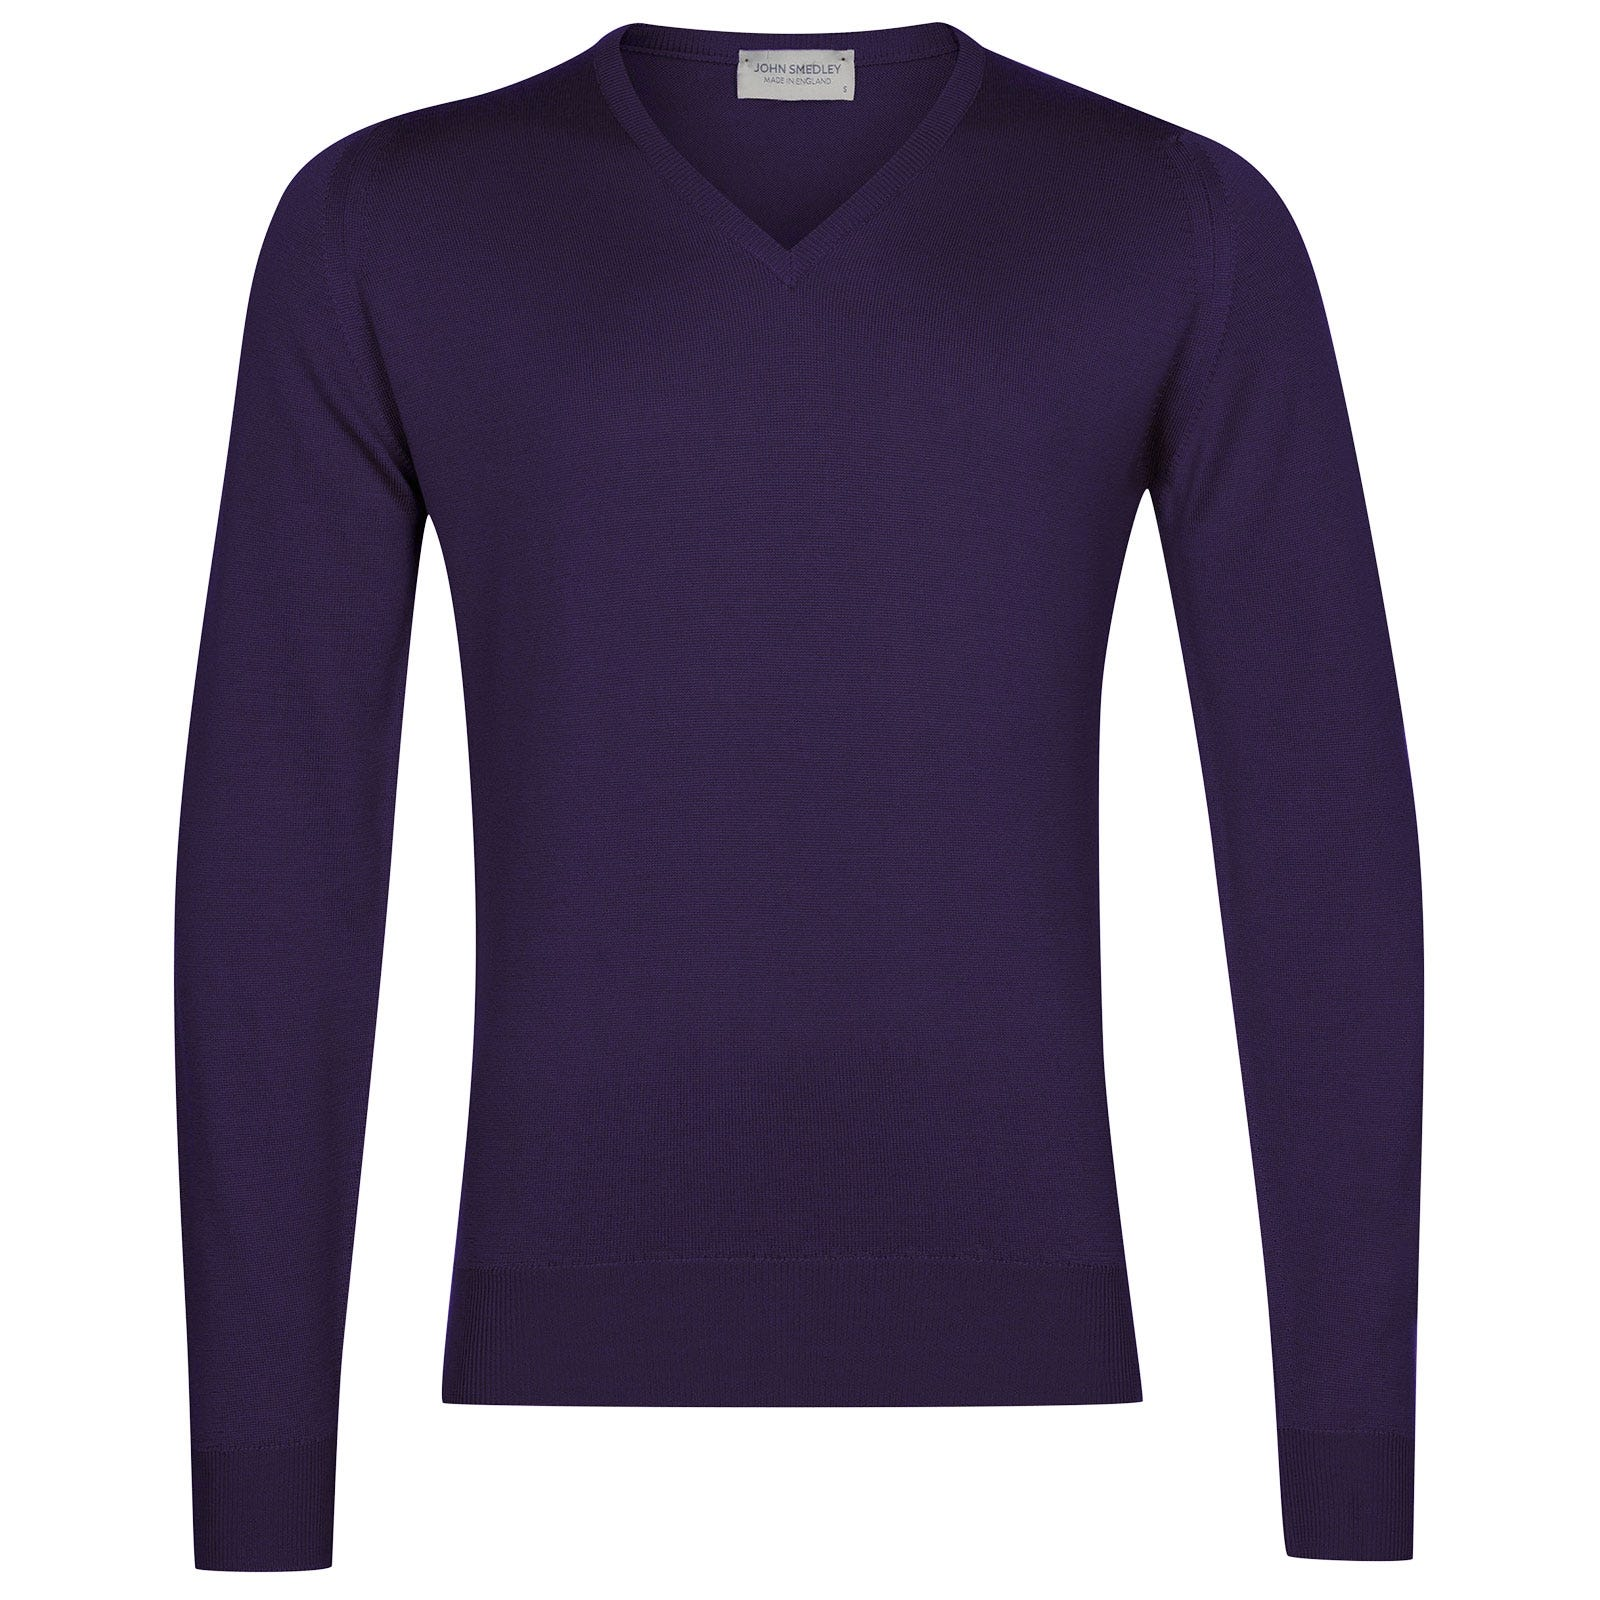 John Smedley Blenheim Merino Wool Pullover in Elderberry Purple-XL